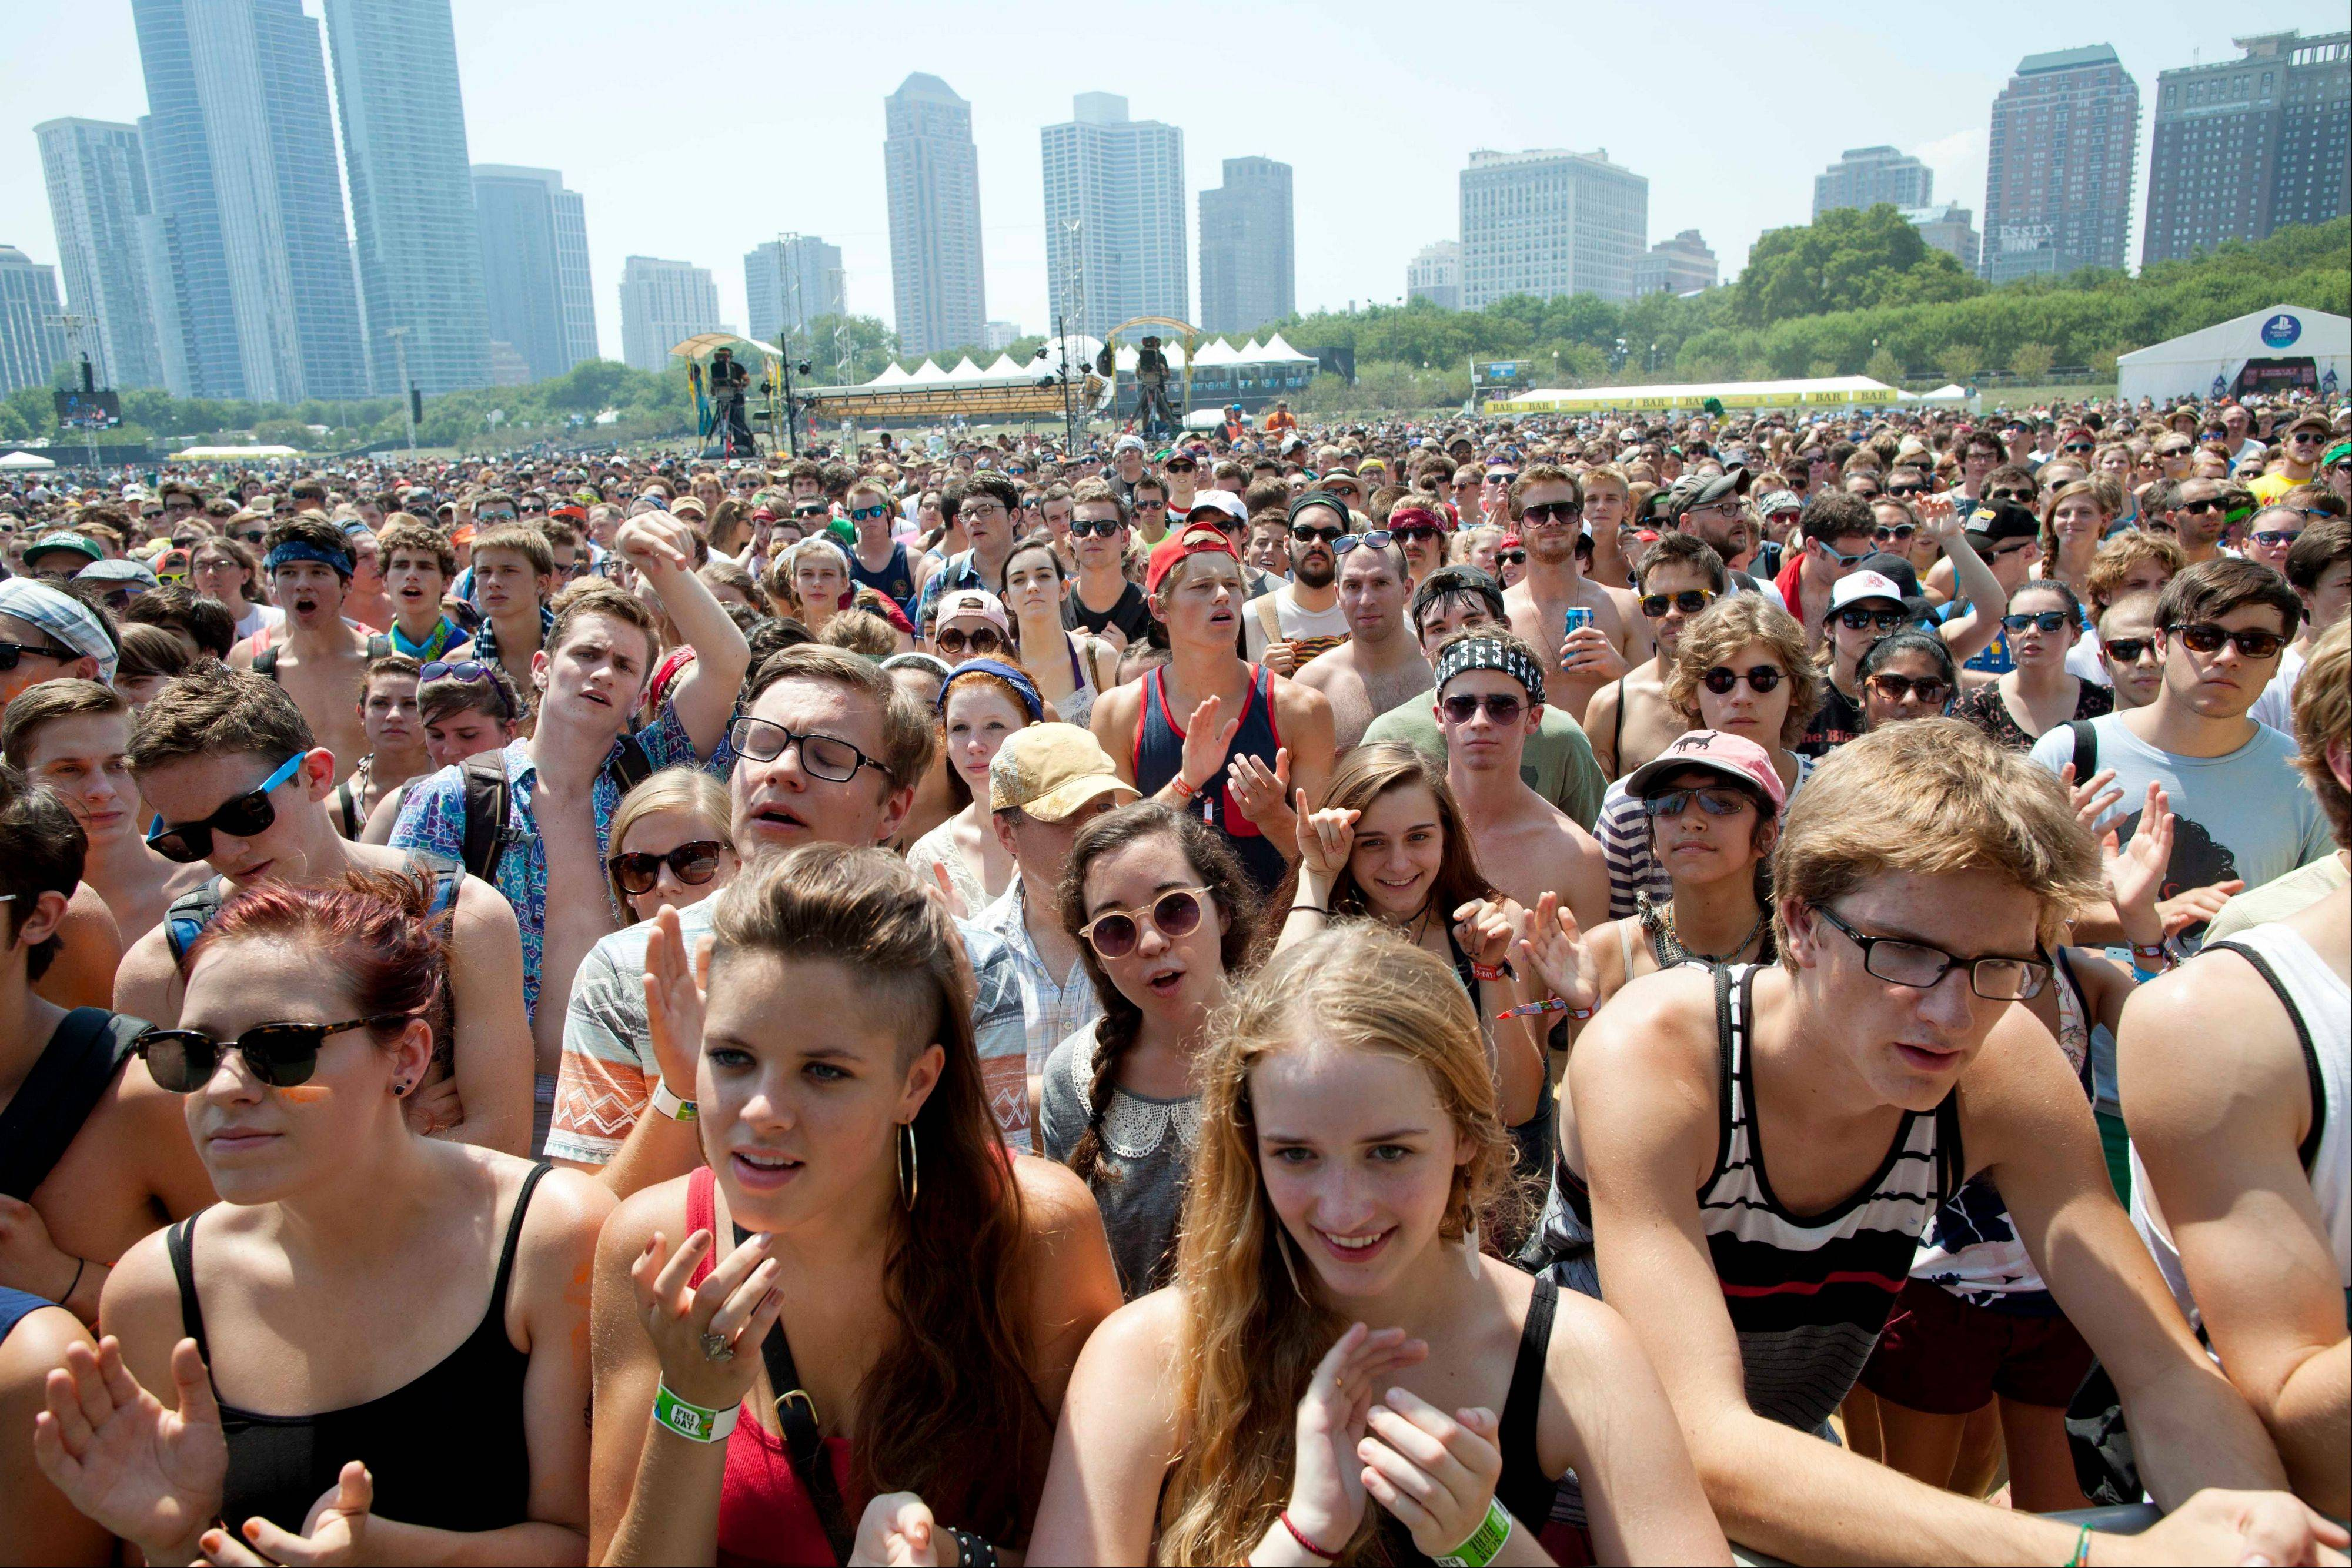 Fans gather for a performance by Yellow Ostrich XX on Aug. 3 at Lollapalooza in Chicago's Grant Park.